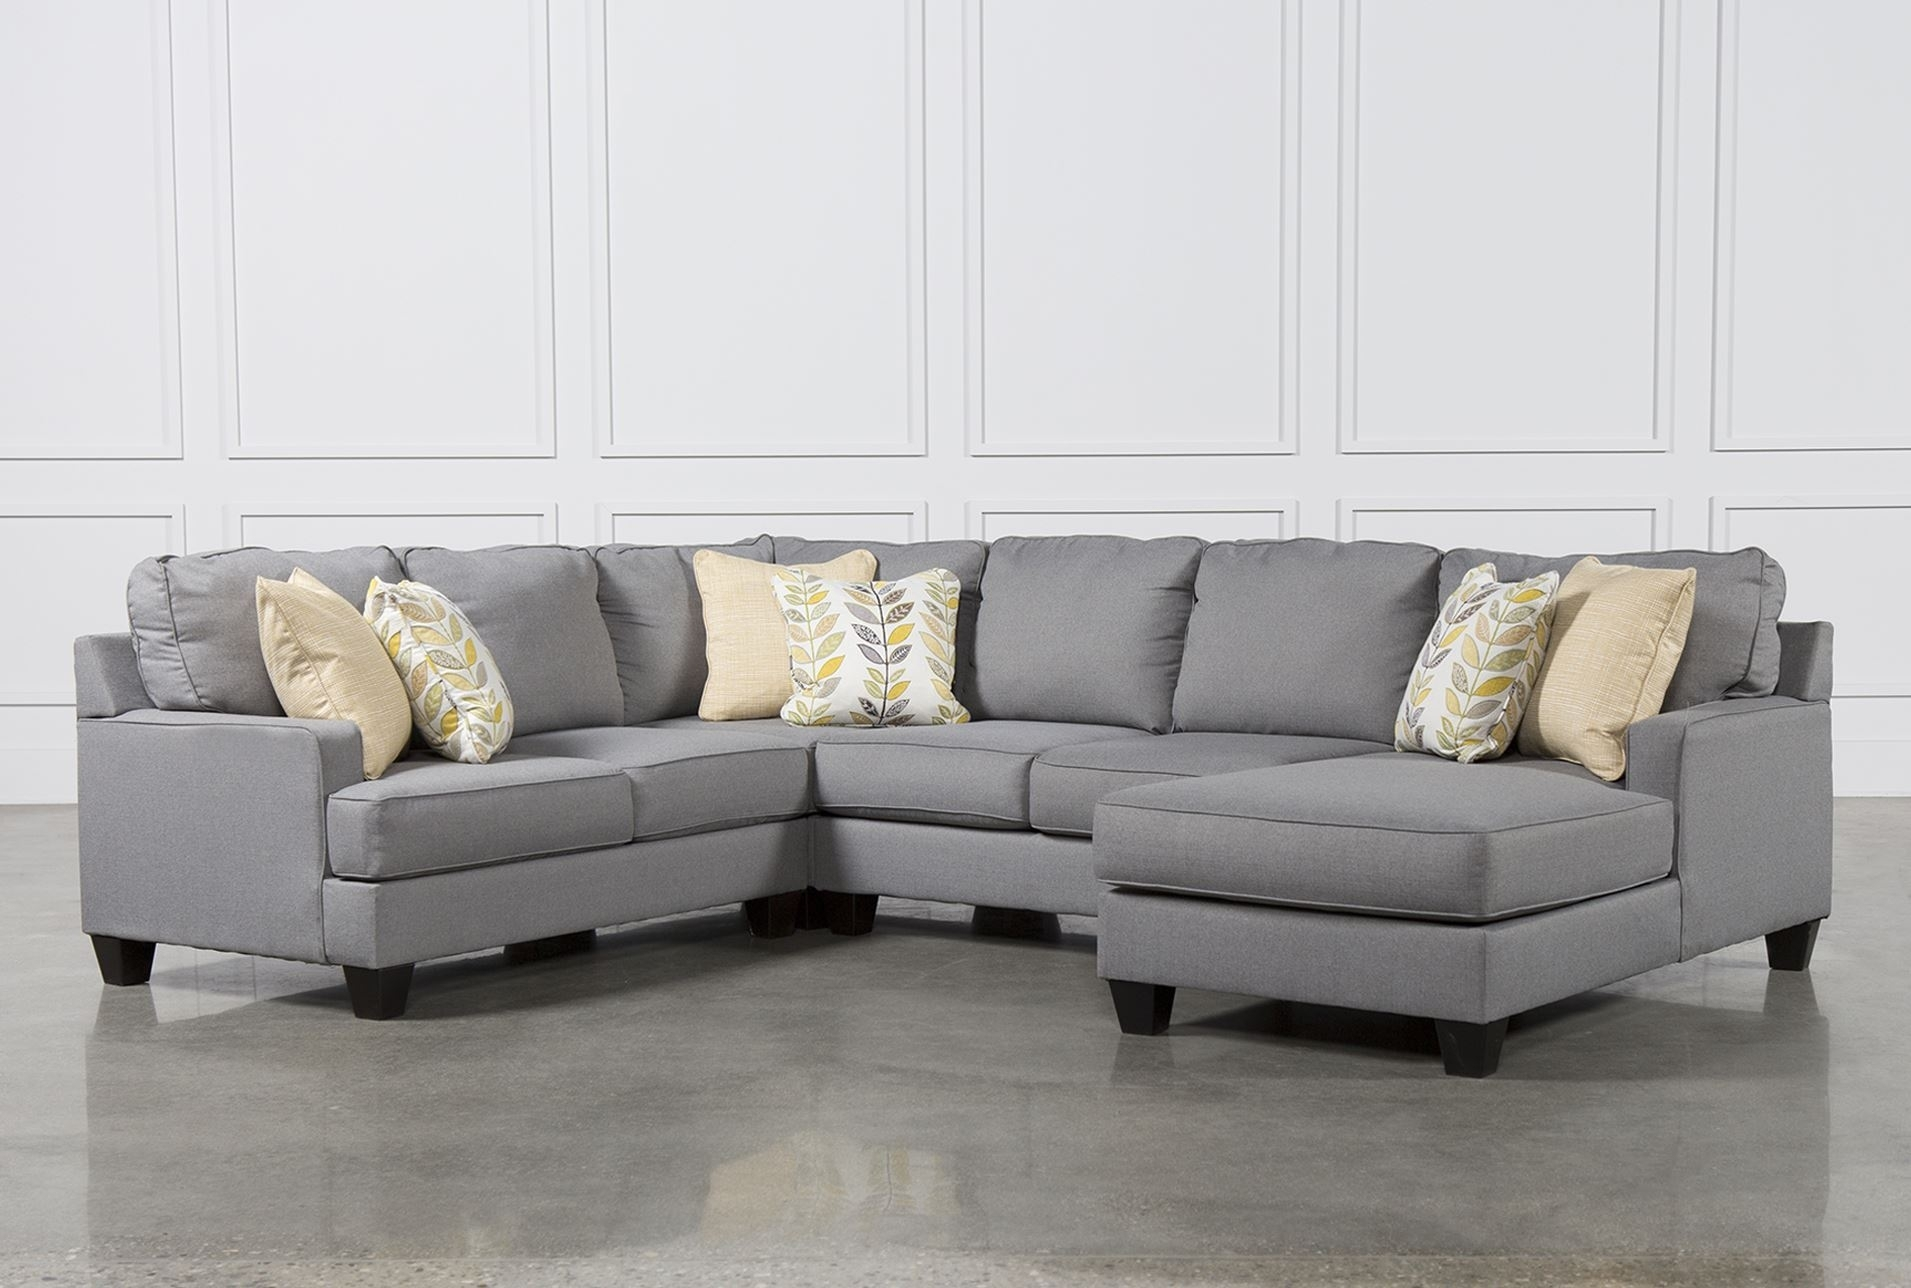 Sofa: Comfort And Stylish Patola Park Sectional — Laetapaparaguay In Meyer 3 Piece Sectionals With Laf Chaise (View 10 of 25)